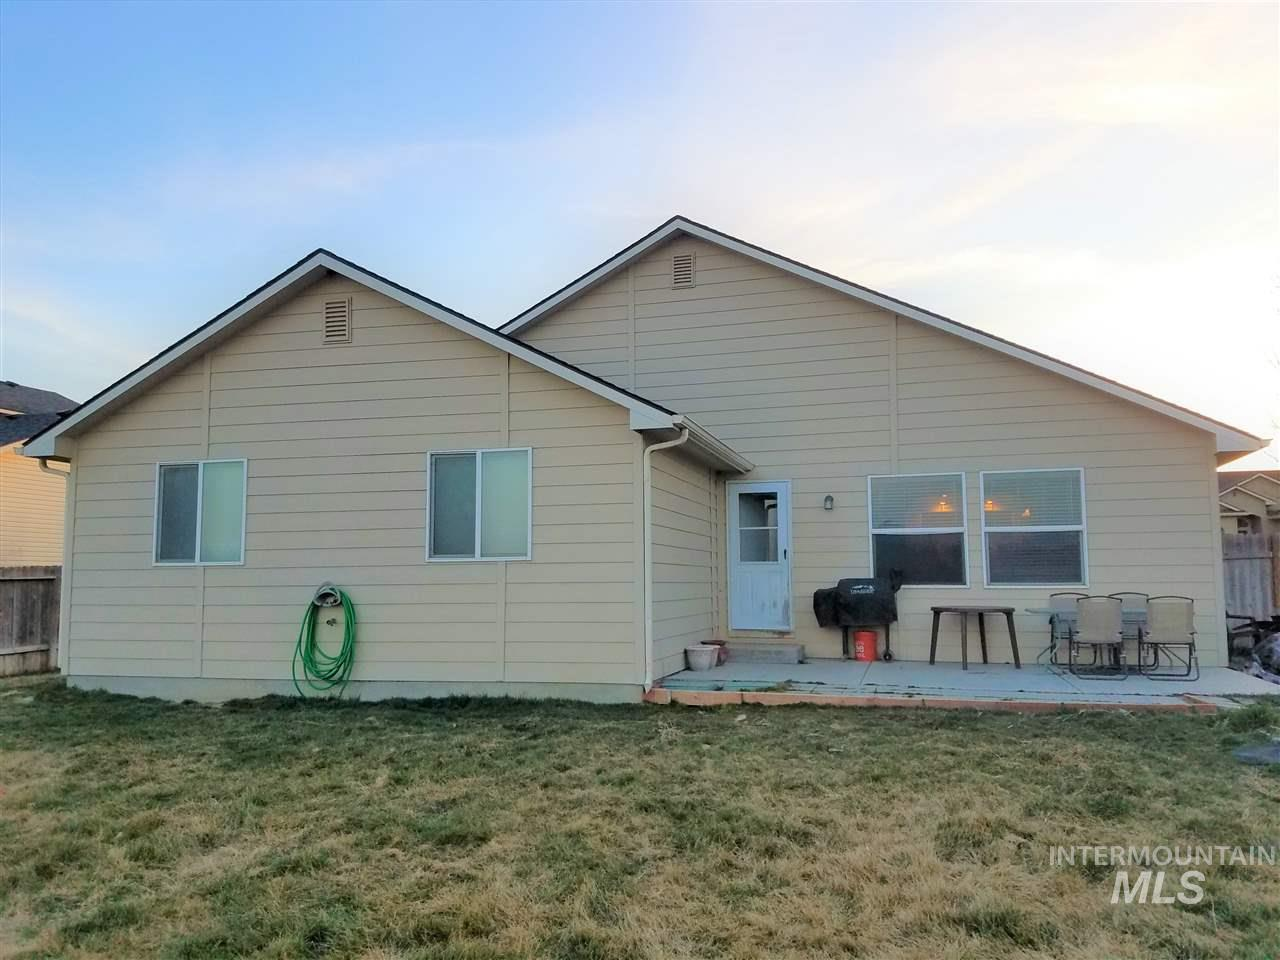 522 Morning Dove Way, Marsing, Idaho 83639, 3 Bedrooms, 2 Bathrooms, Residential For Sale, Price $249,500, 98722158